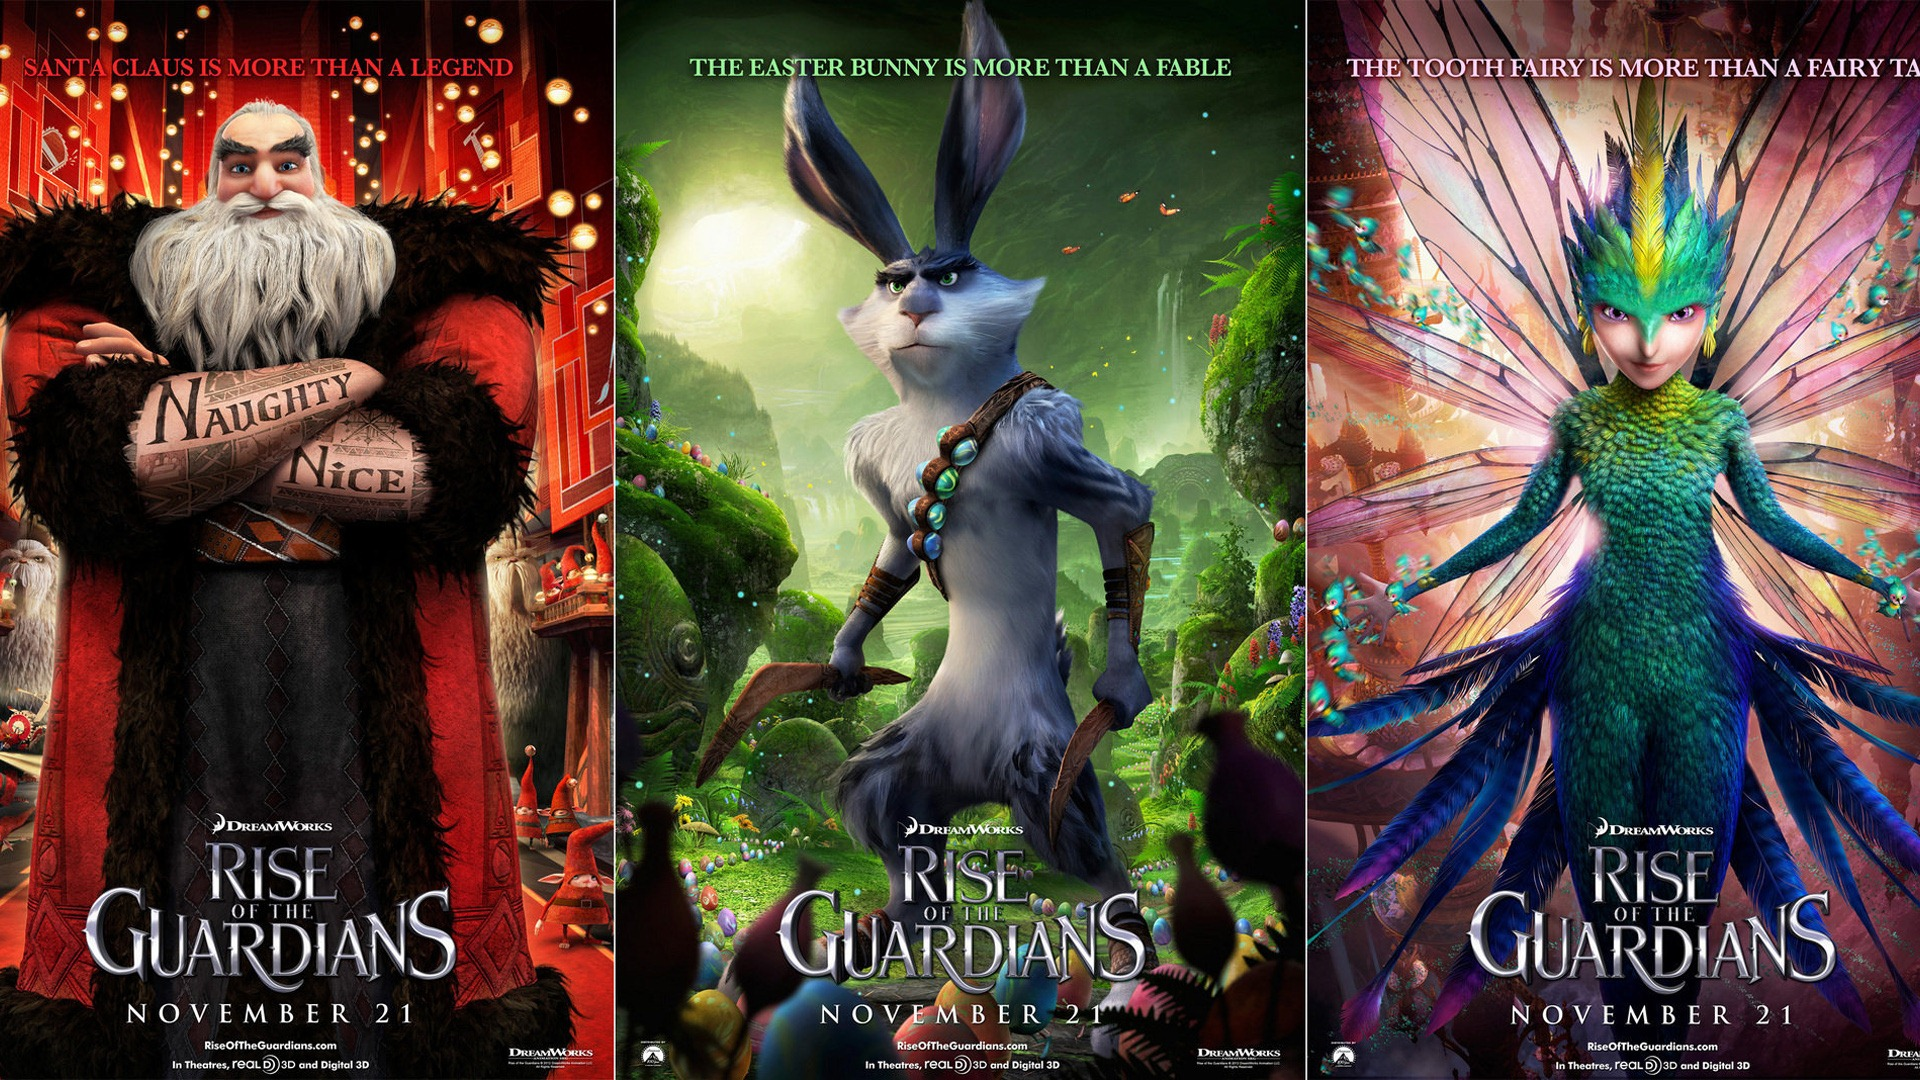 Rise of the guardians hd wallpapers 3 1920x1080 wallpaper rise of the guardians hd wallpapers 3 1920x1080 altavistaventures Gallery